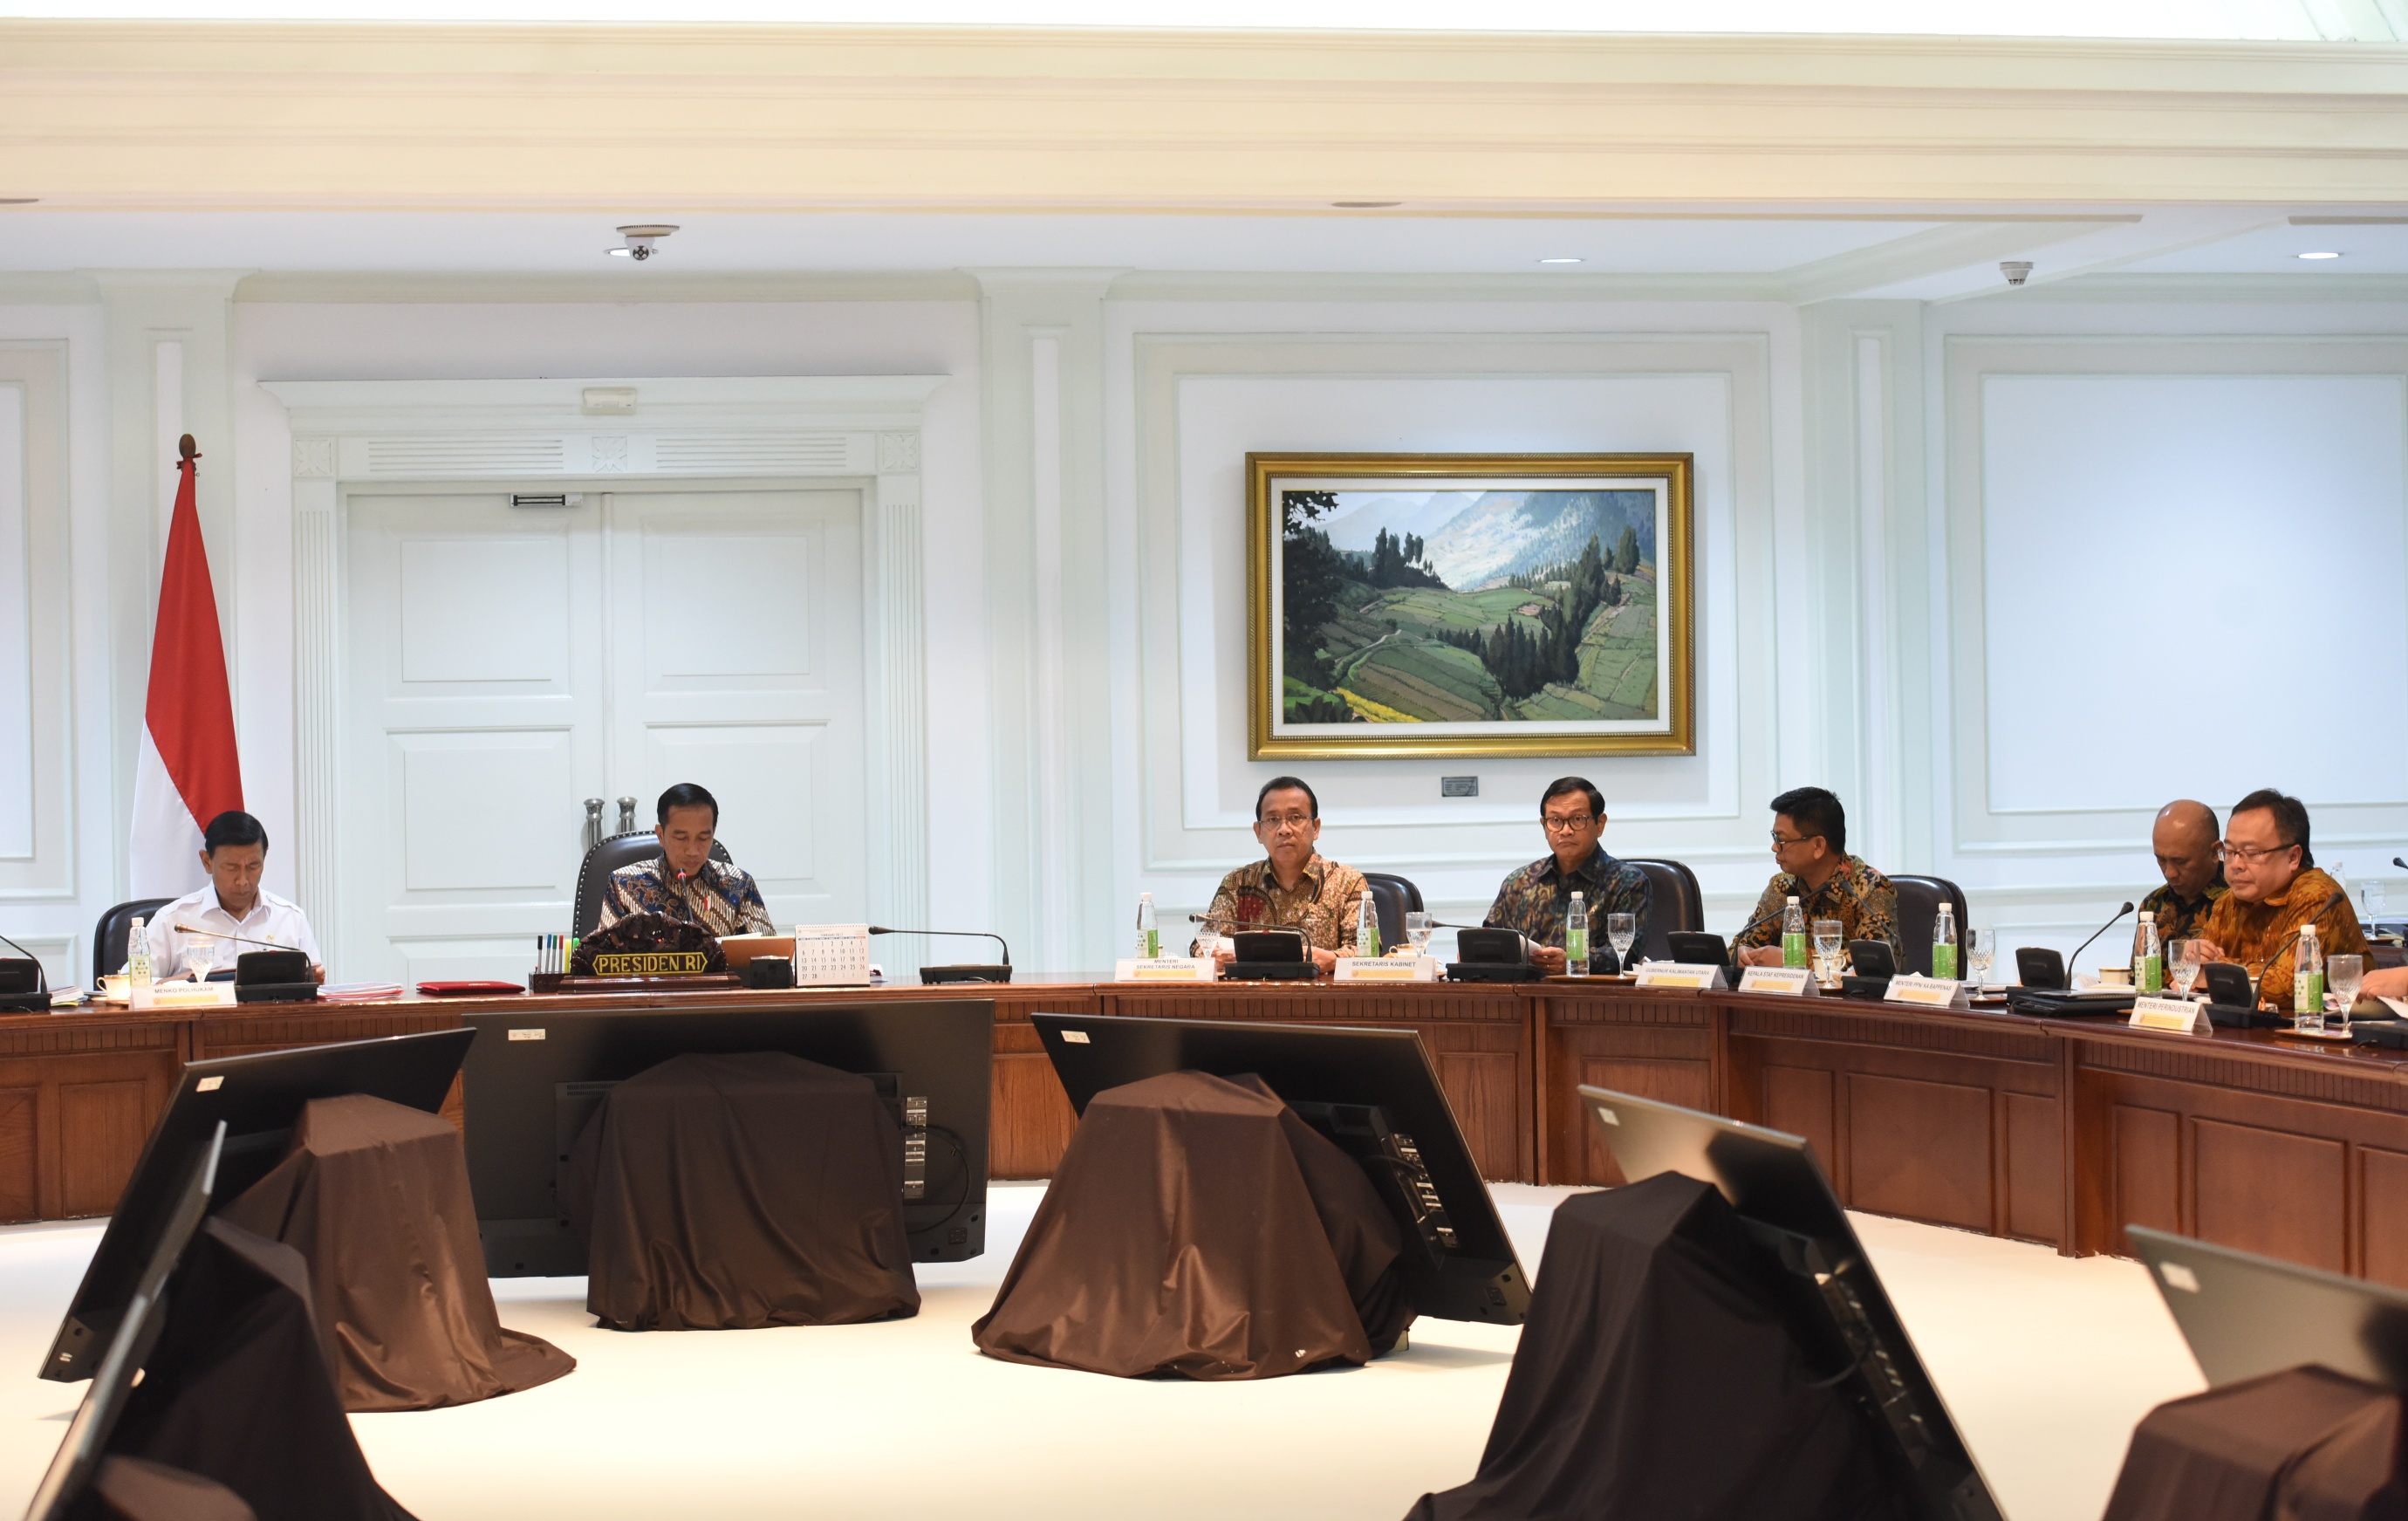 Governor of North Kalimantan Irianto Lambrie attends a limited meeting led by President Jokowi on Tuesday (21/3), at the Presidential Office, Jakarta